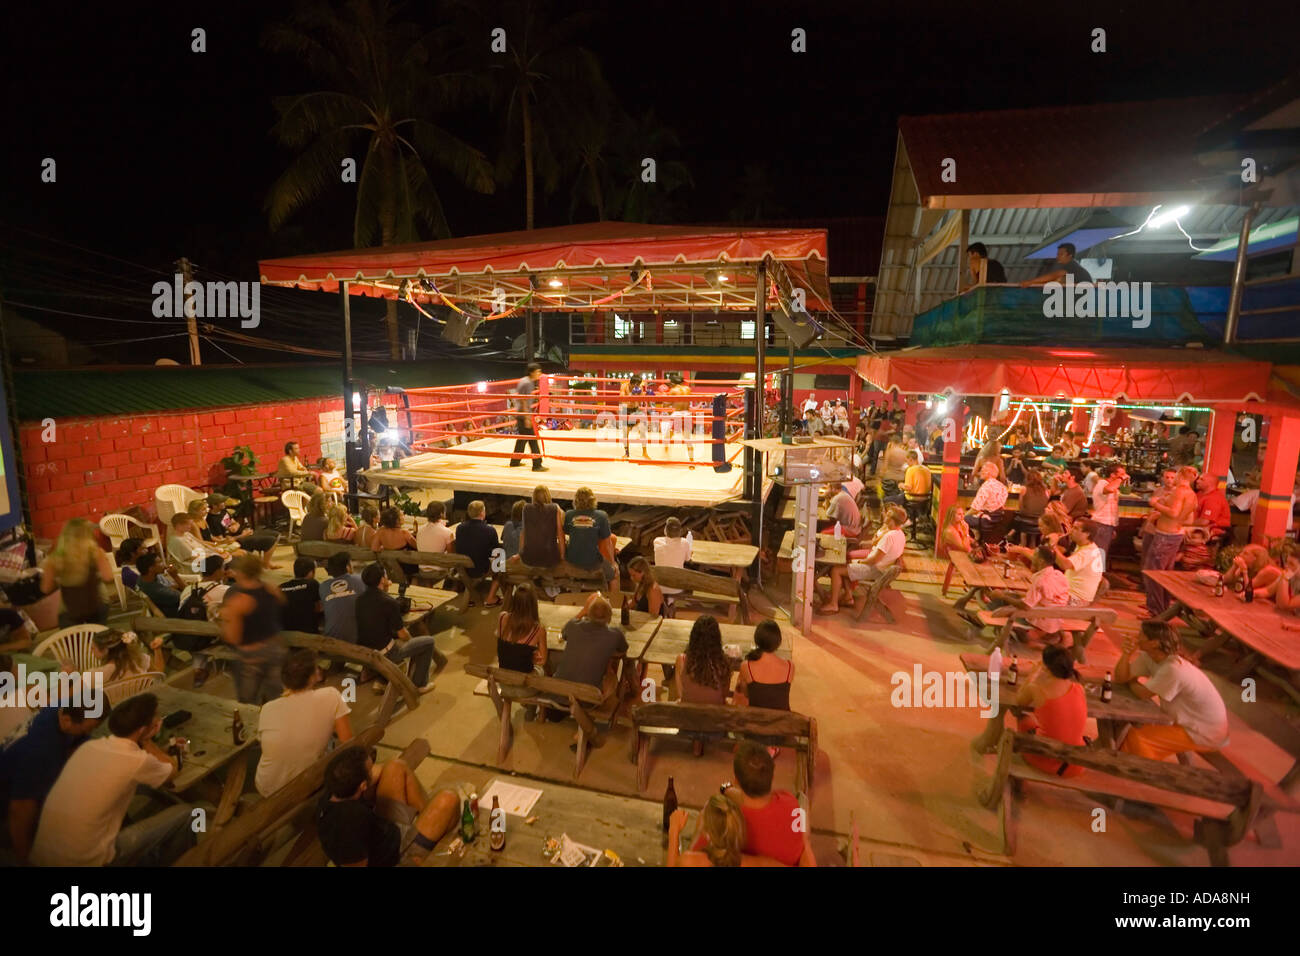 Tourists watching Thai Boxing in the open air area of the